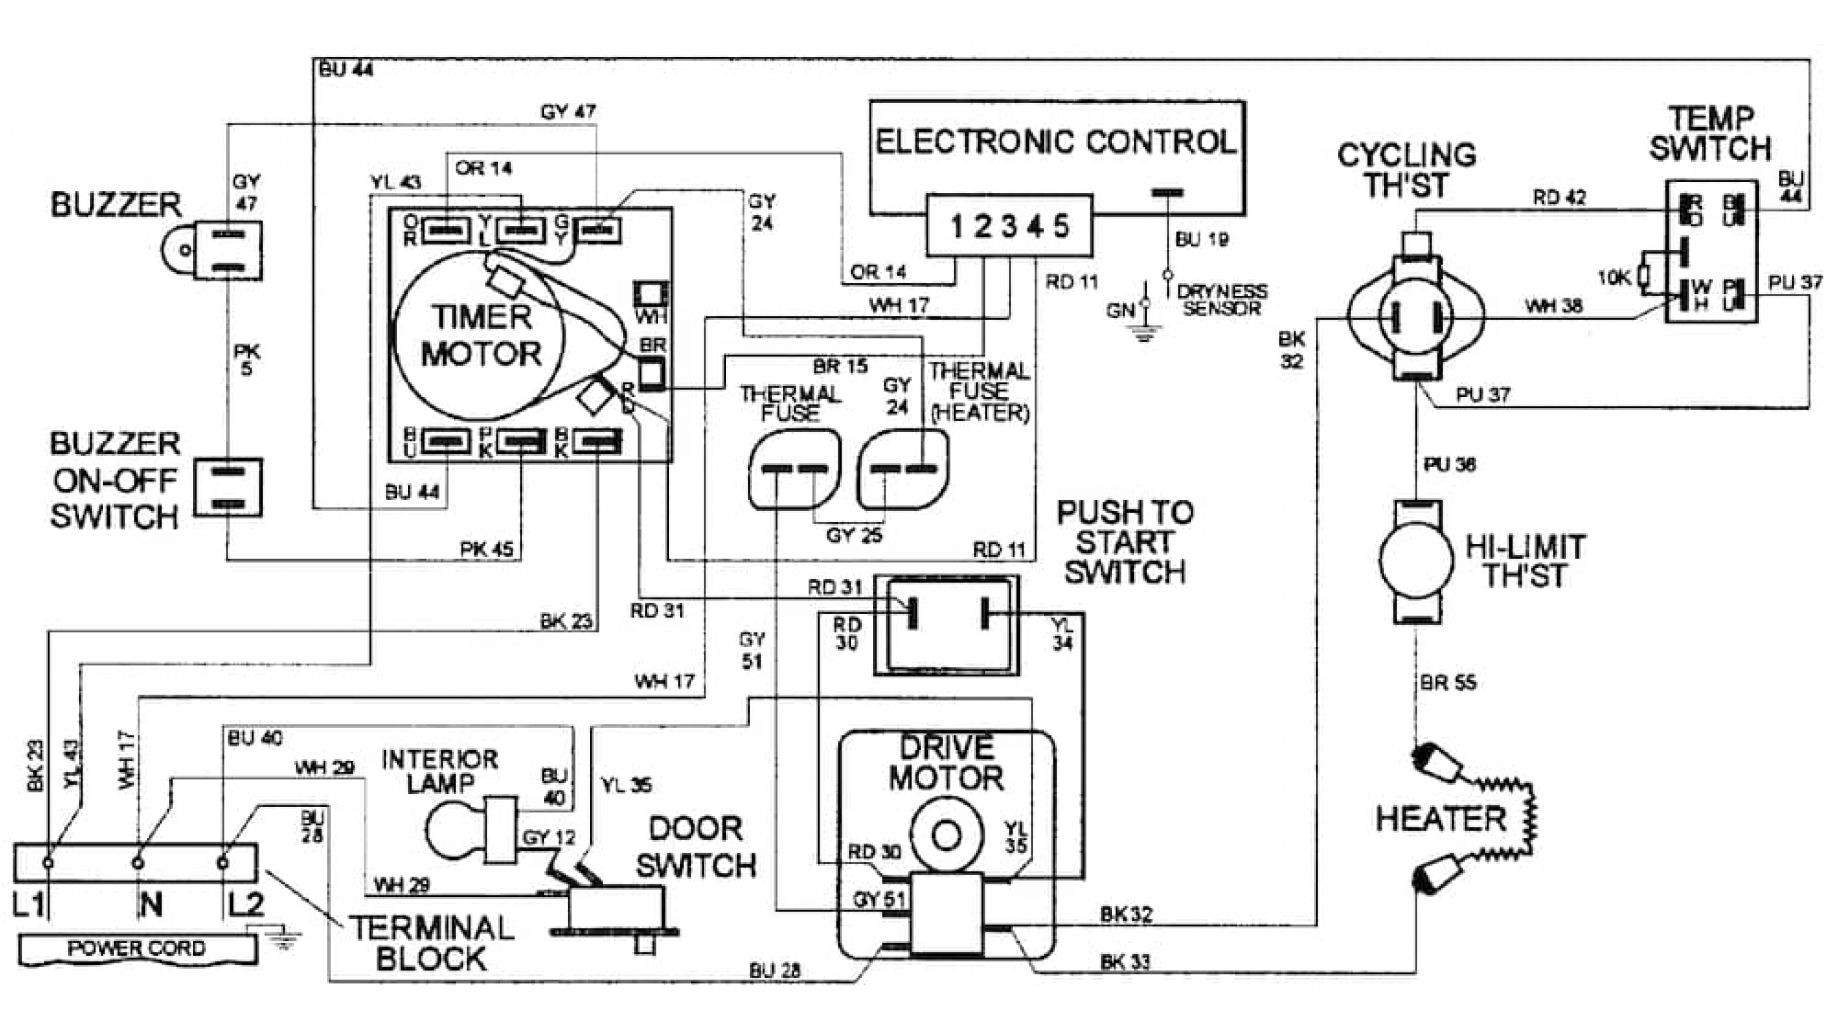 maytag dryer wiring schematic Collection-Dryer Motor Wiring Diagram 1-a